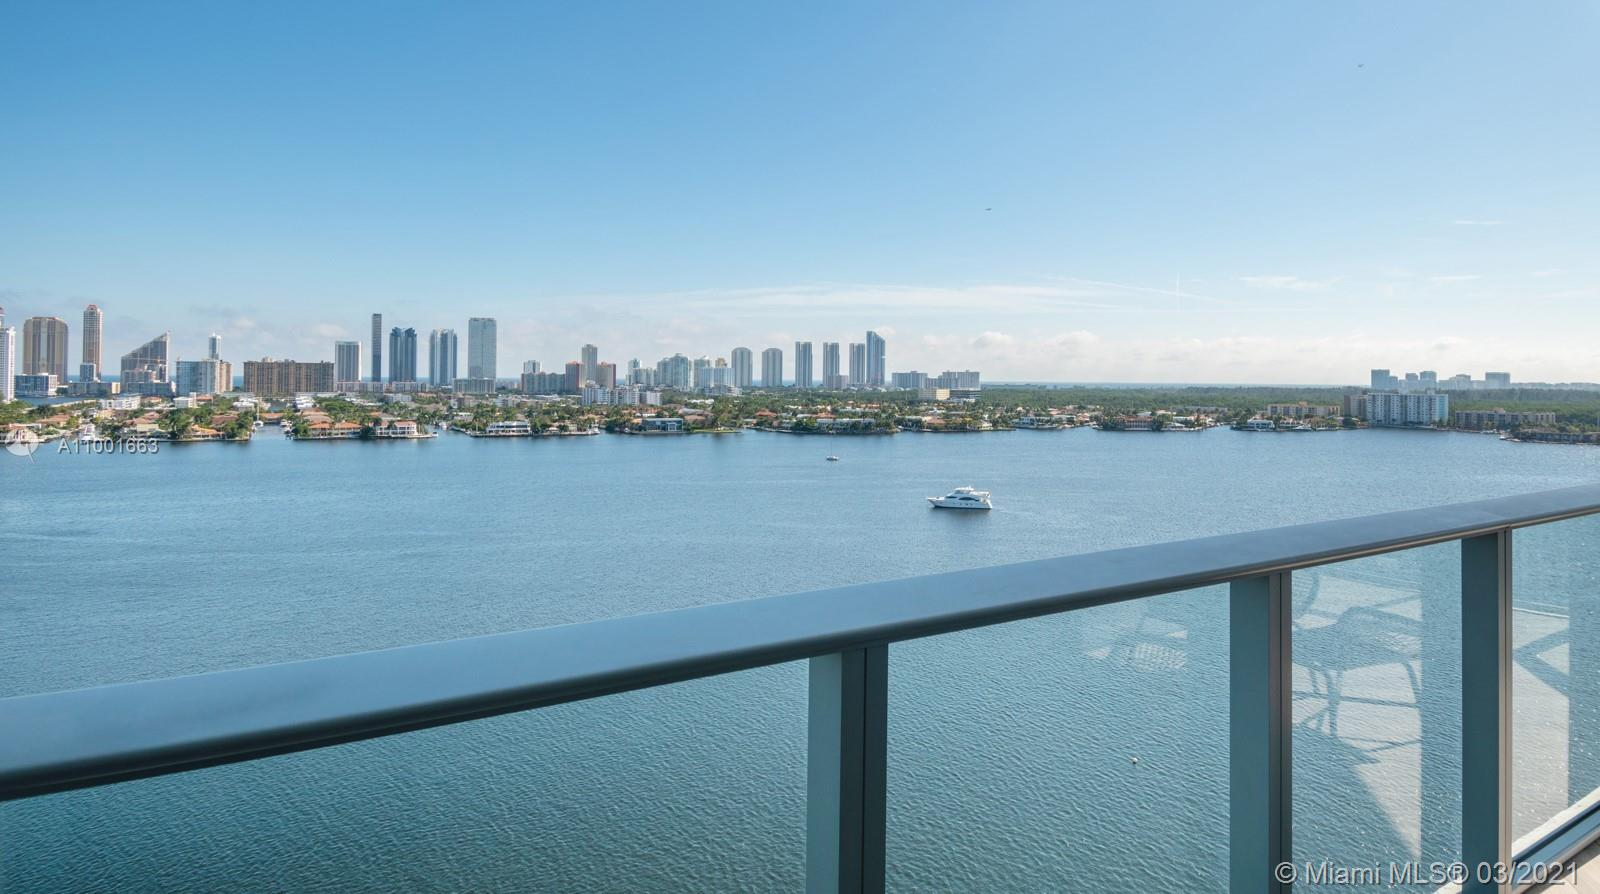 Marina Palms 2 #1609 - 17301 Biscayne Blvd #1609, North Miami Beach, FL 33160